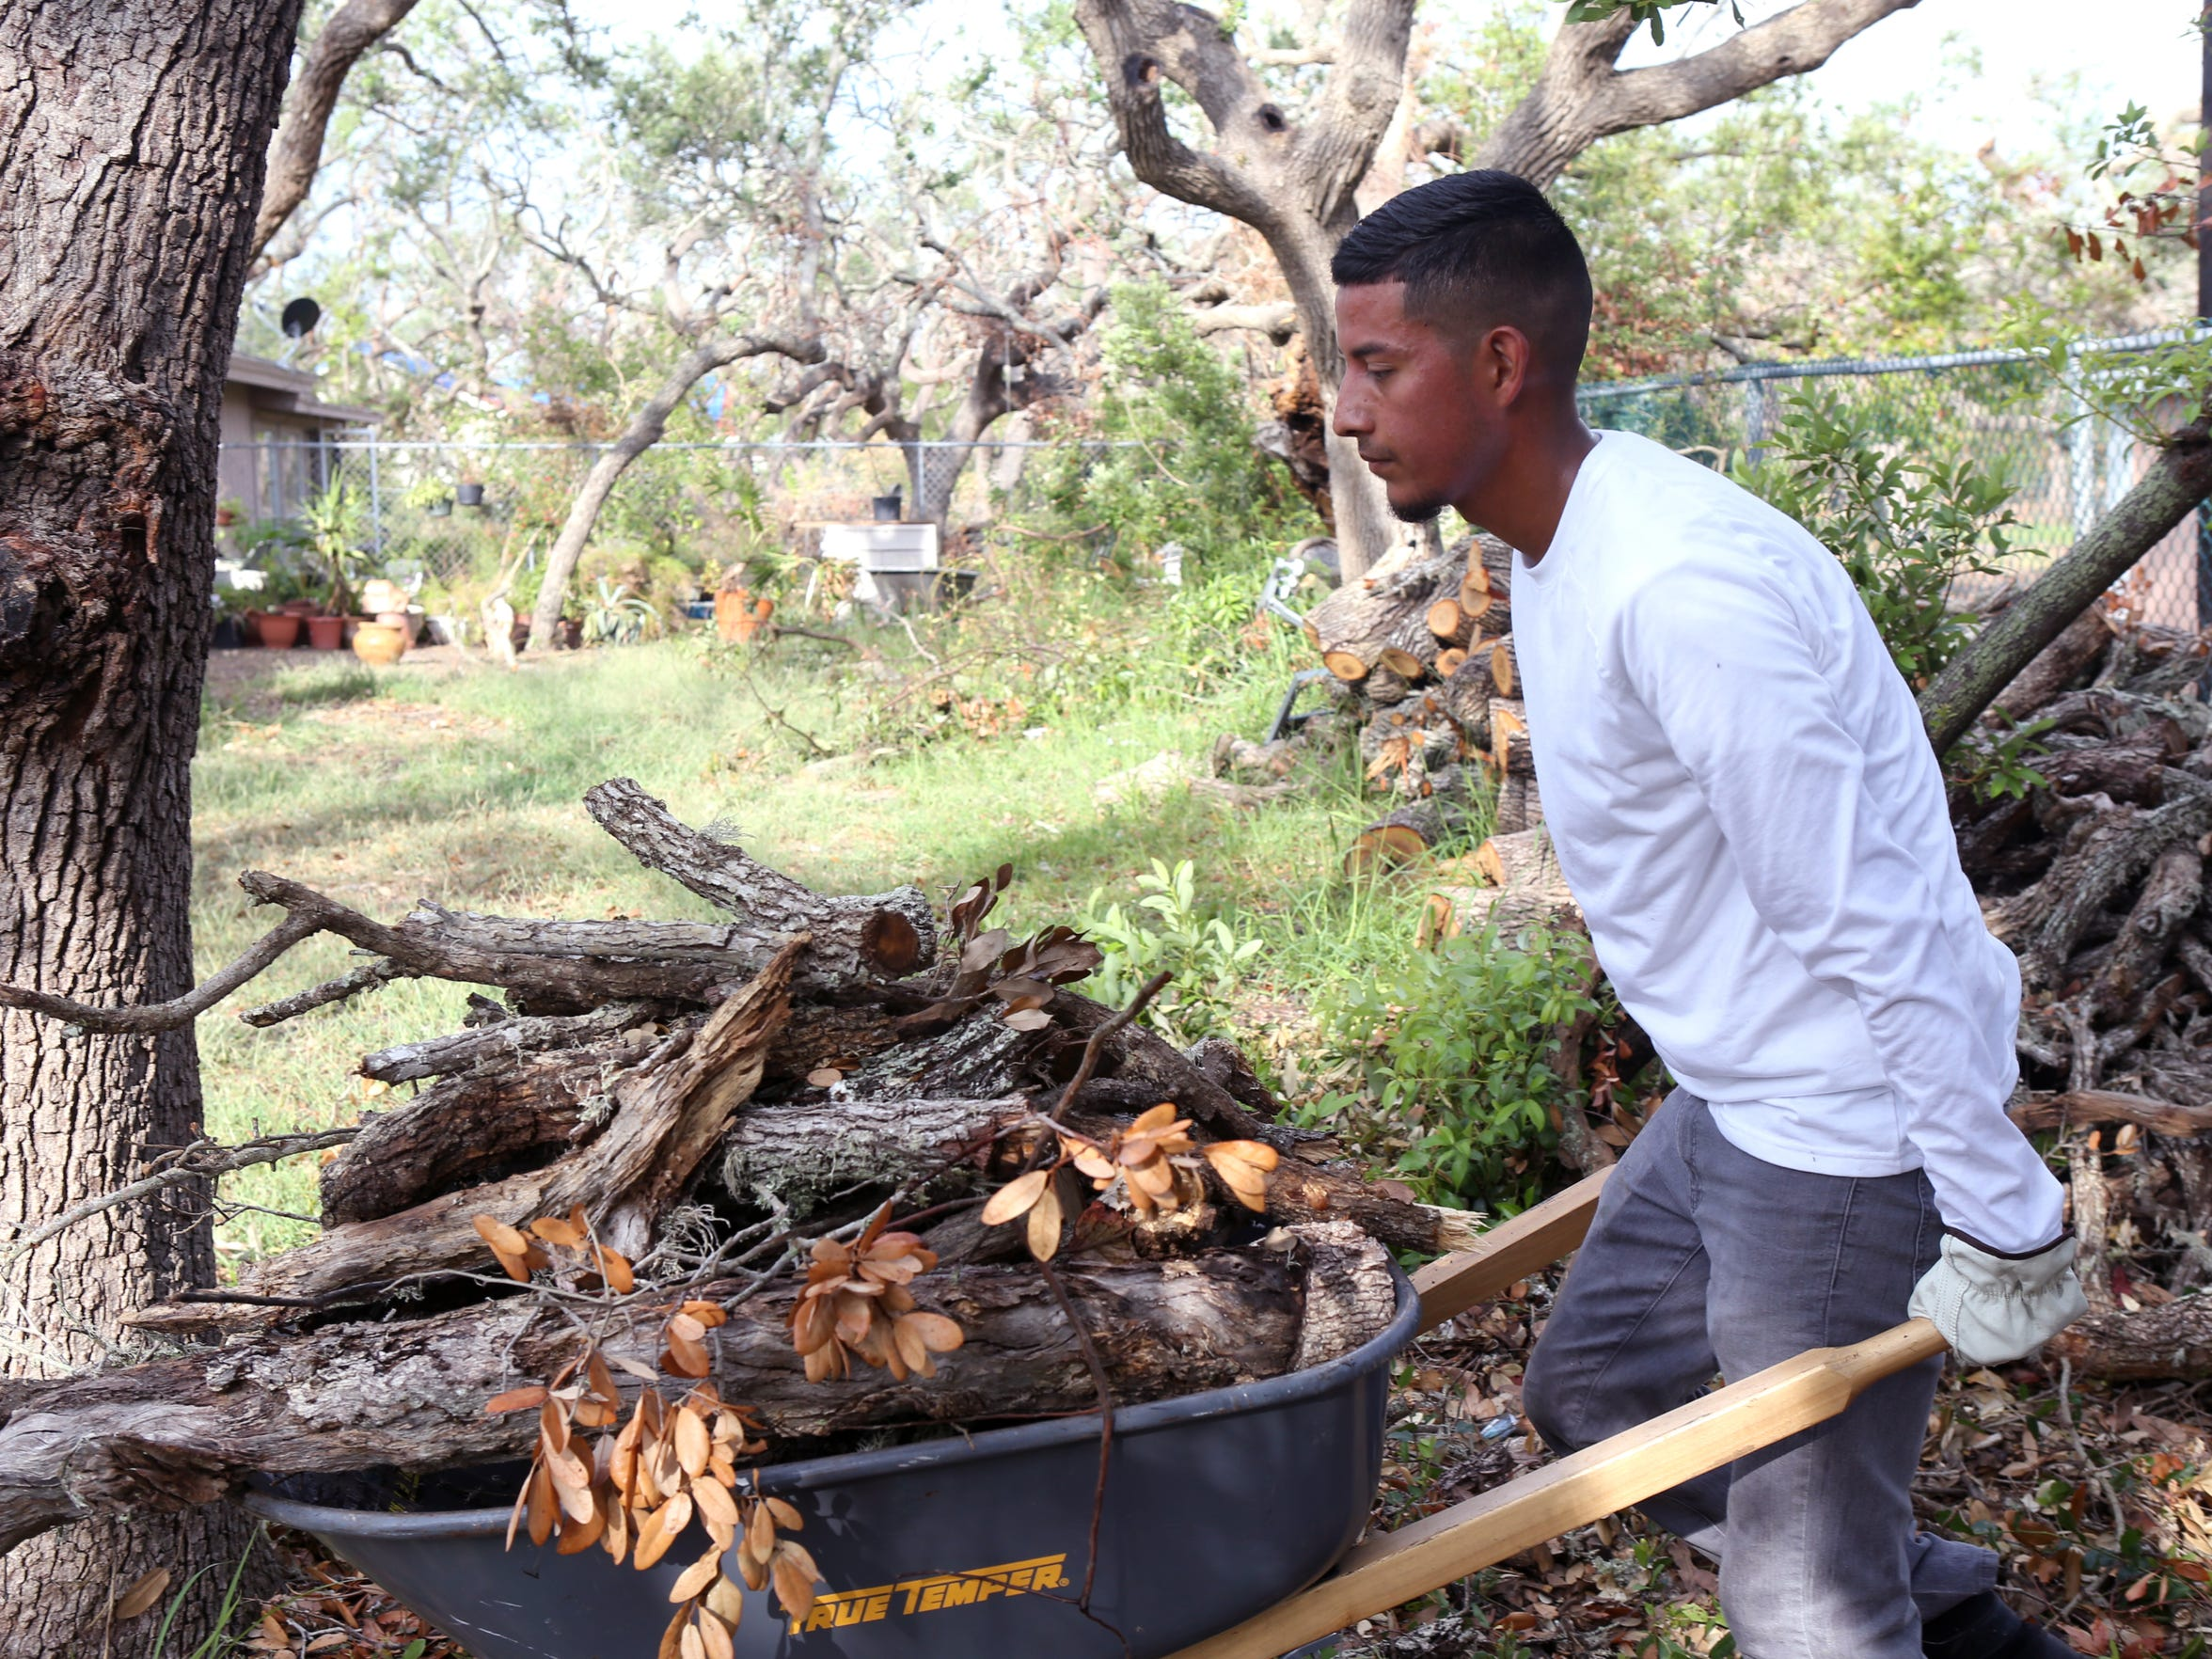 Former DACA recipient Ezequiel Rojas Martinez cleans up debris in Rockport on October 3, 2017. His citizenship status hasn't always made it easy to keep jobs. He's currently seeking legal permanent residency.